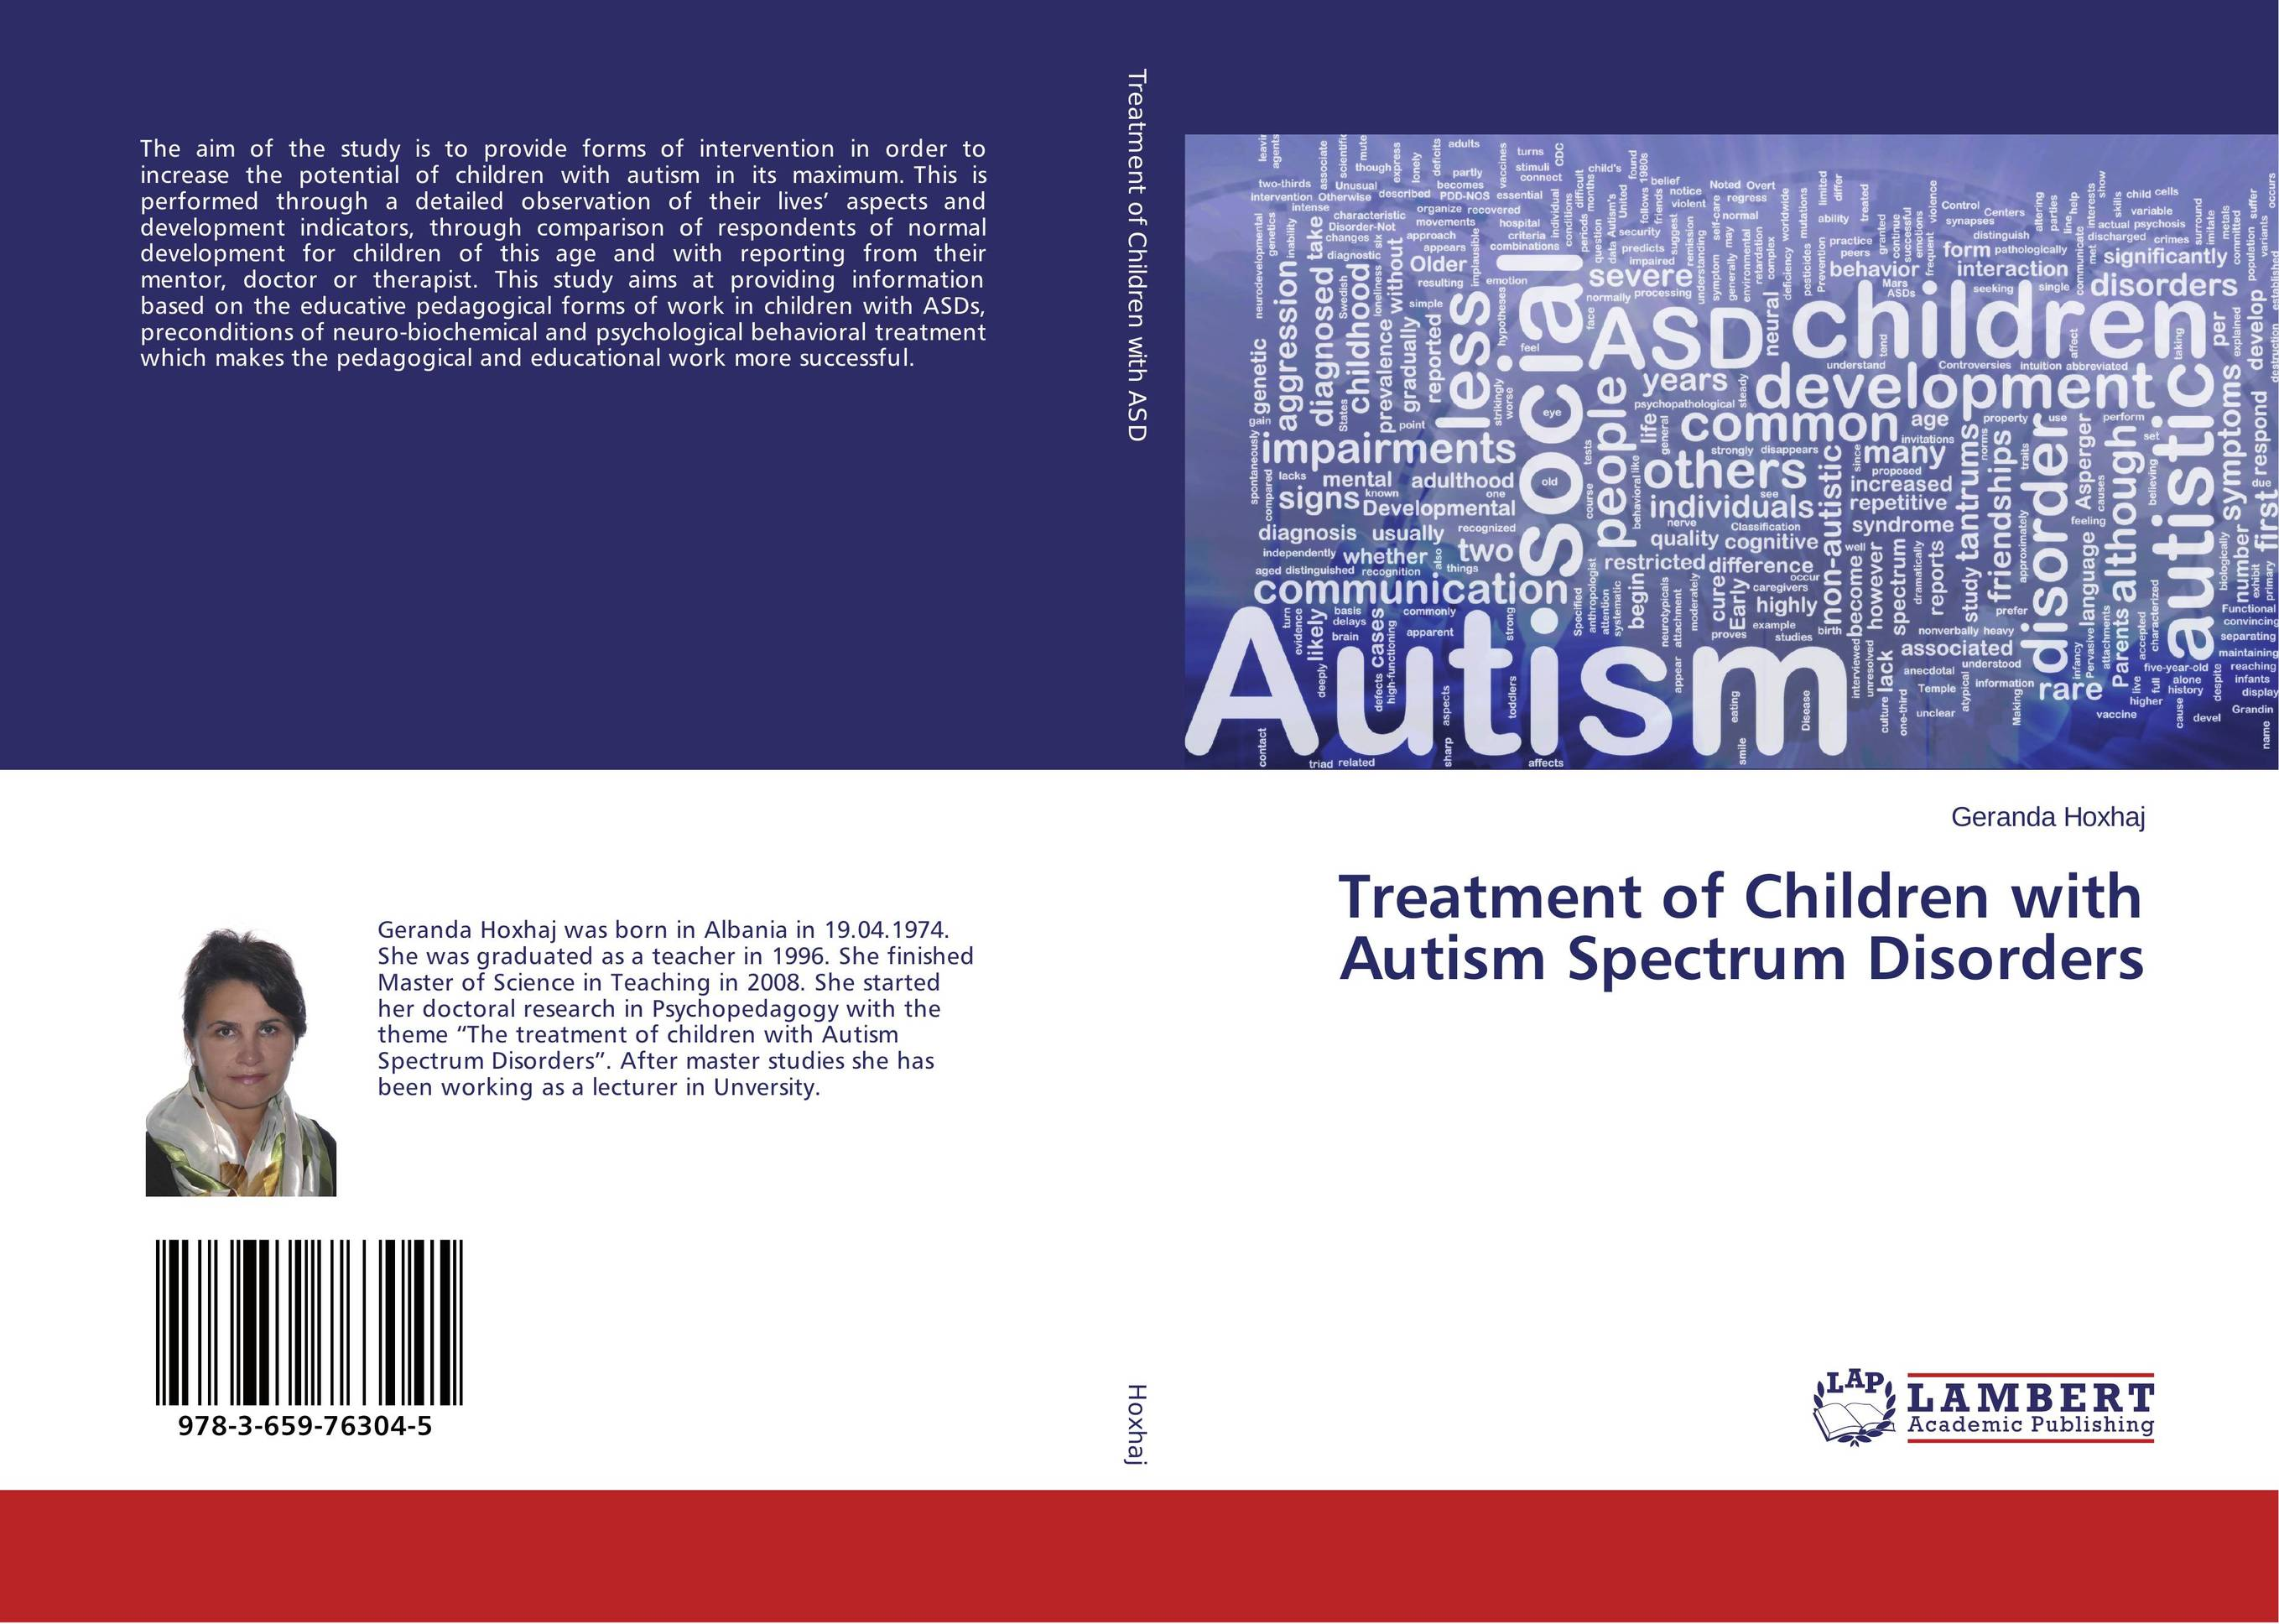 Treatment of Children with Autism Spectrum Disorders epilepsy in children psychological concerns